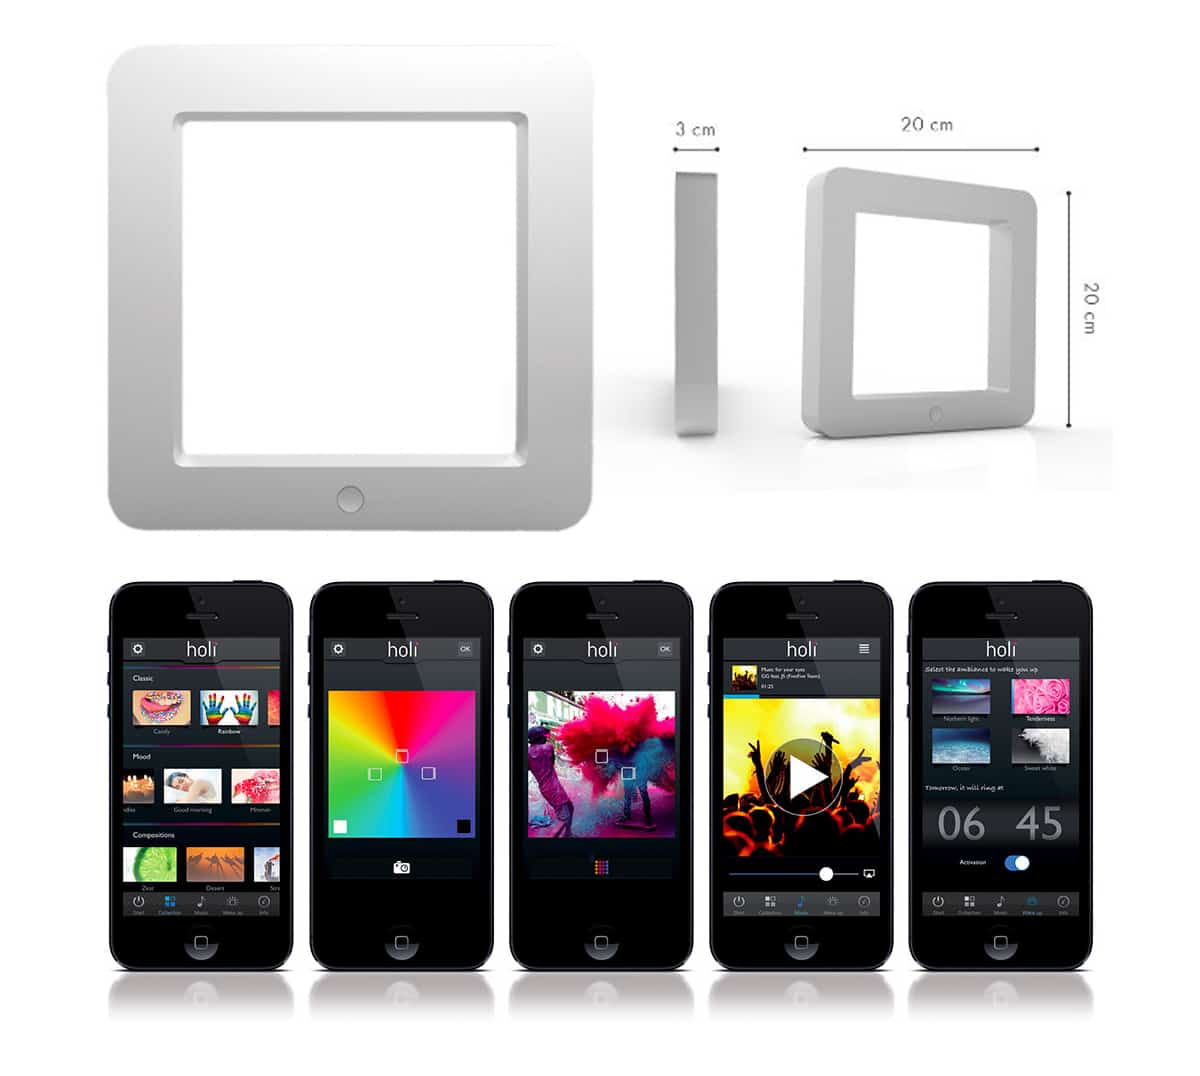 Holi The Smart Connected LED Mood Lamp Control Gadget Using Black iPhone and Android Phones White Frame Dimensions